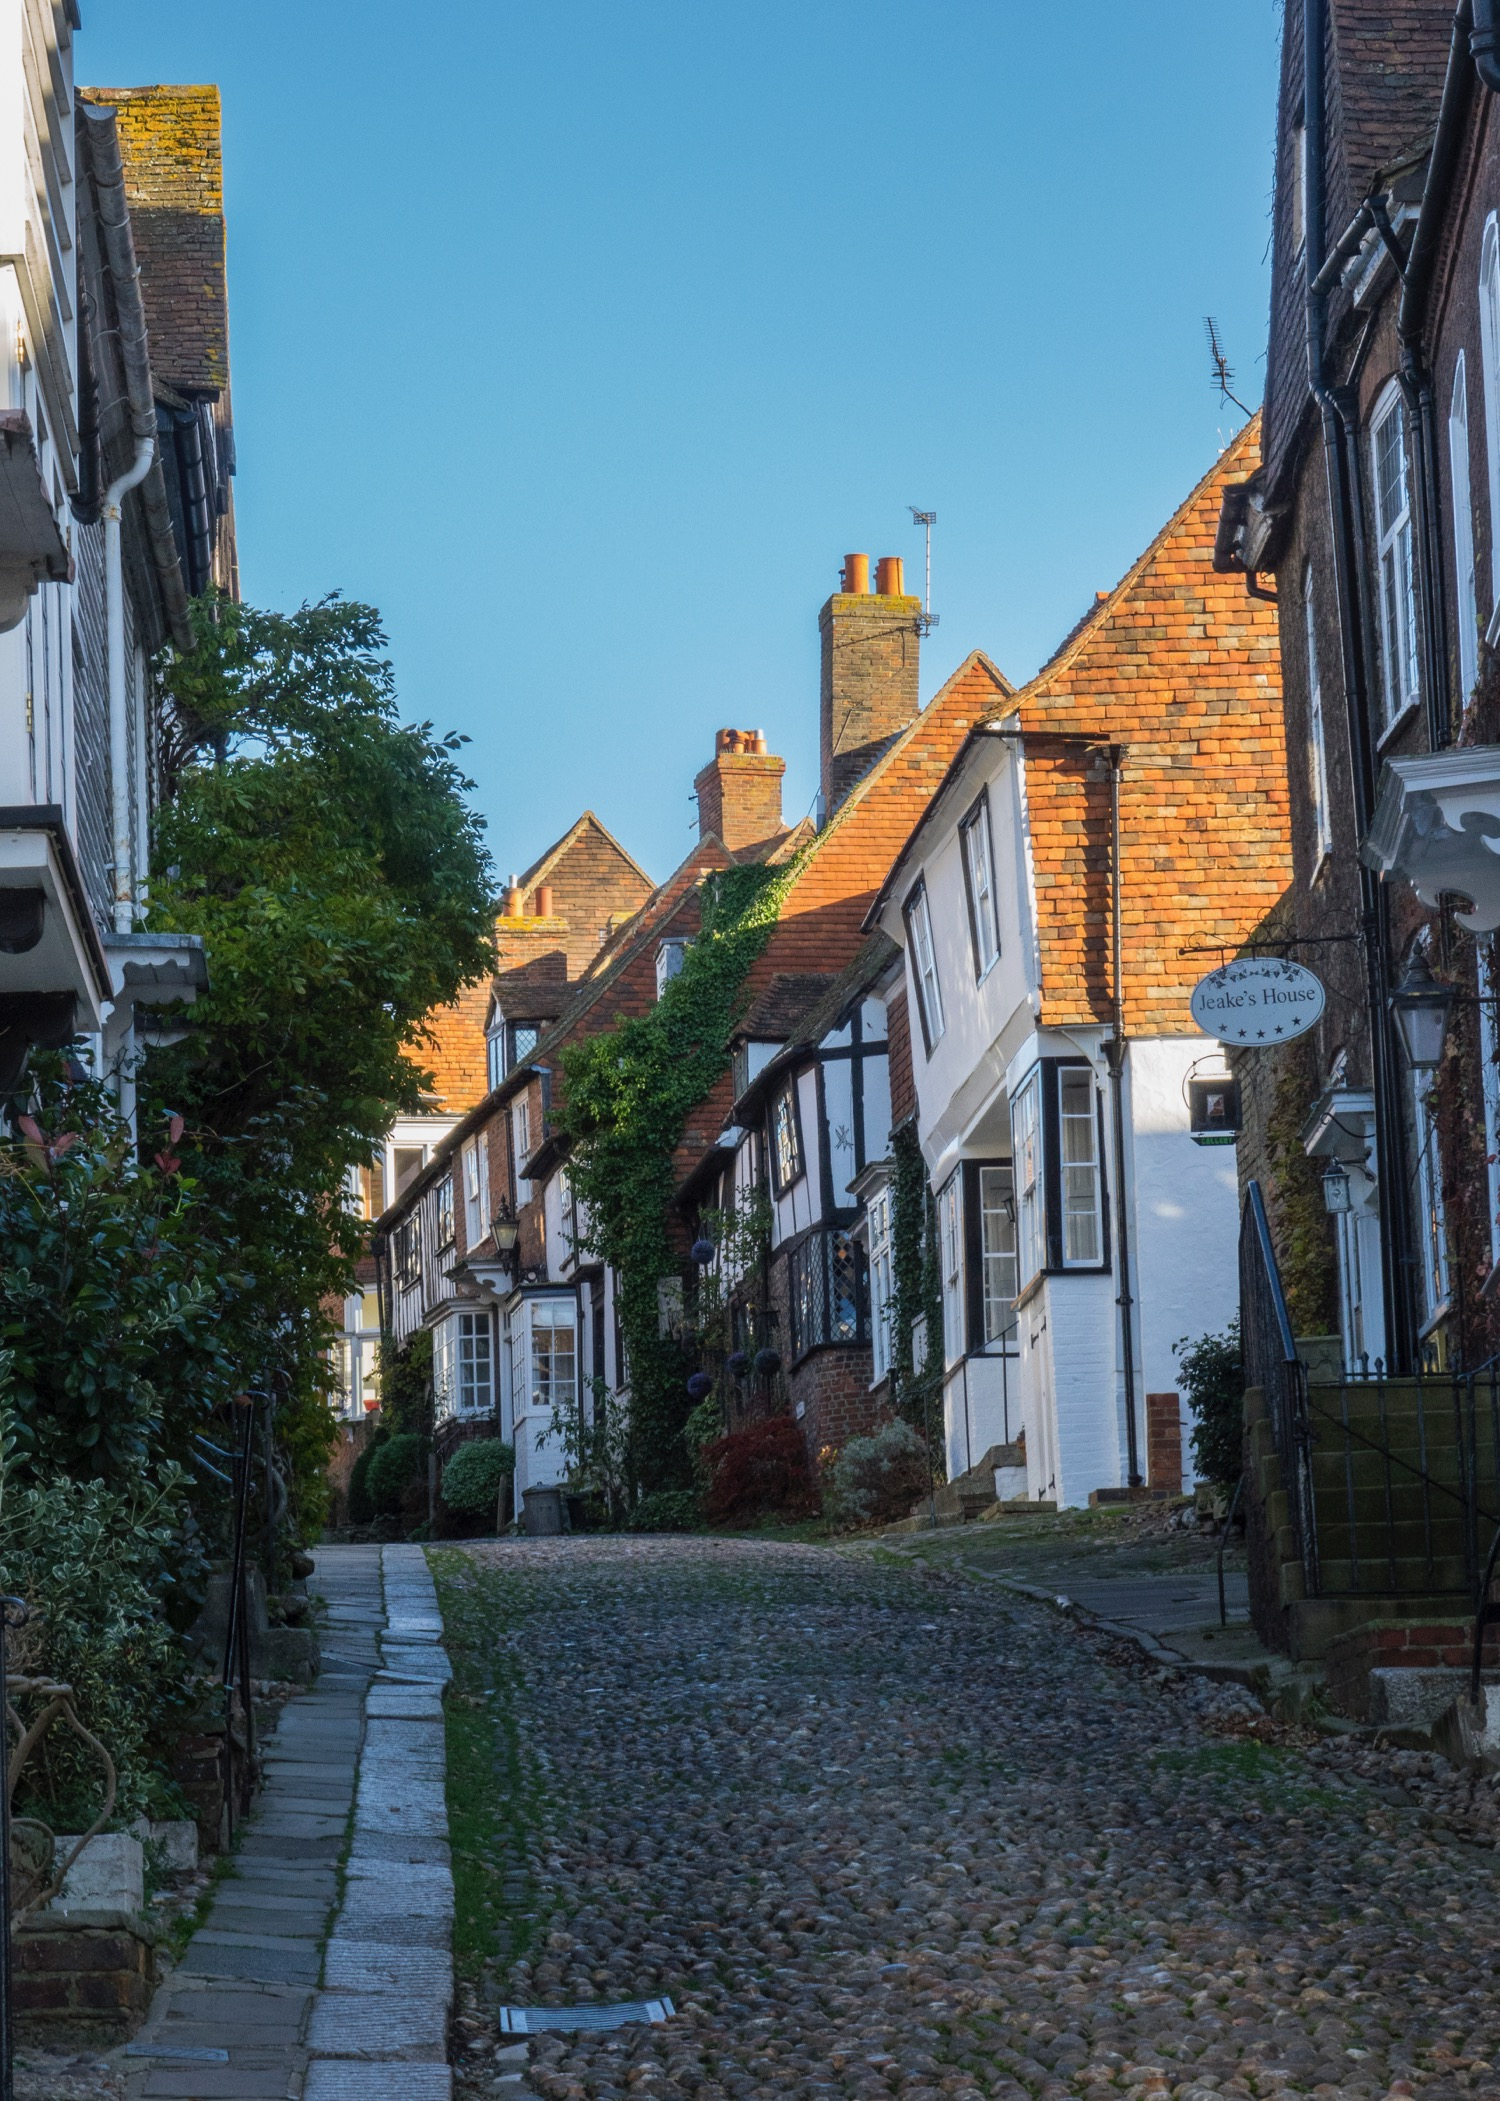 There were lots of cool cobbstone streets throughout the town to explore